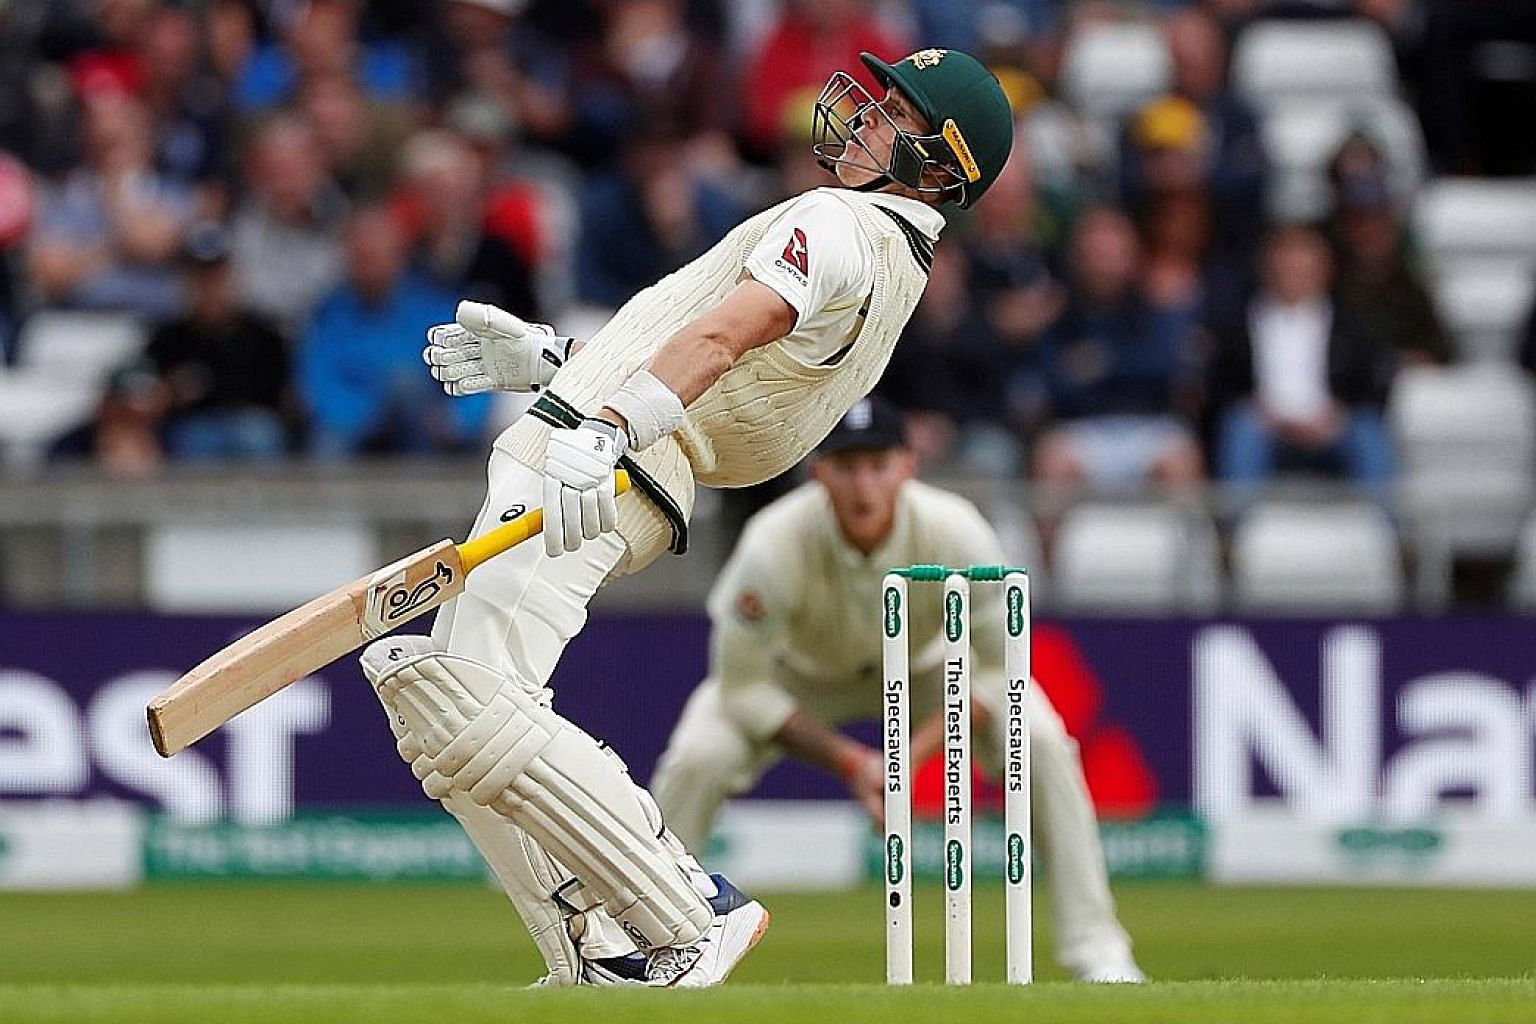 Australian batsman Marnus Labuschagne evading a bouncer from England on day one of the Third Ashes Test on Thursday at Headingley, Leeds.